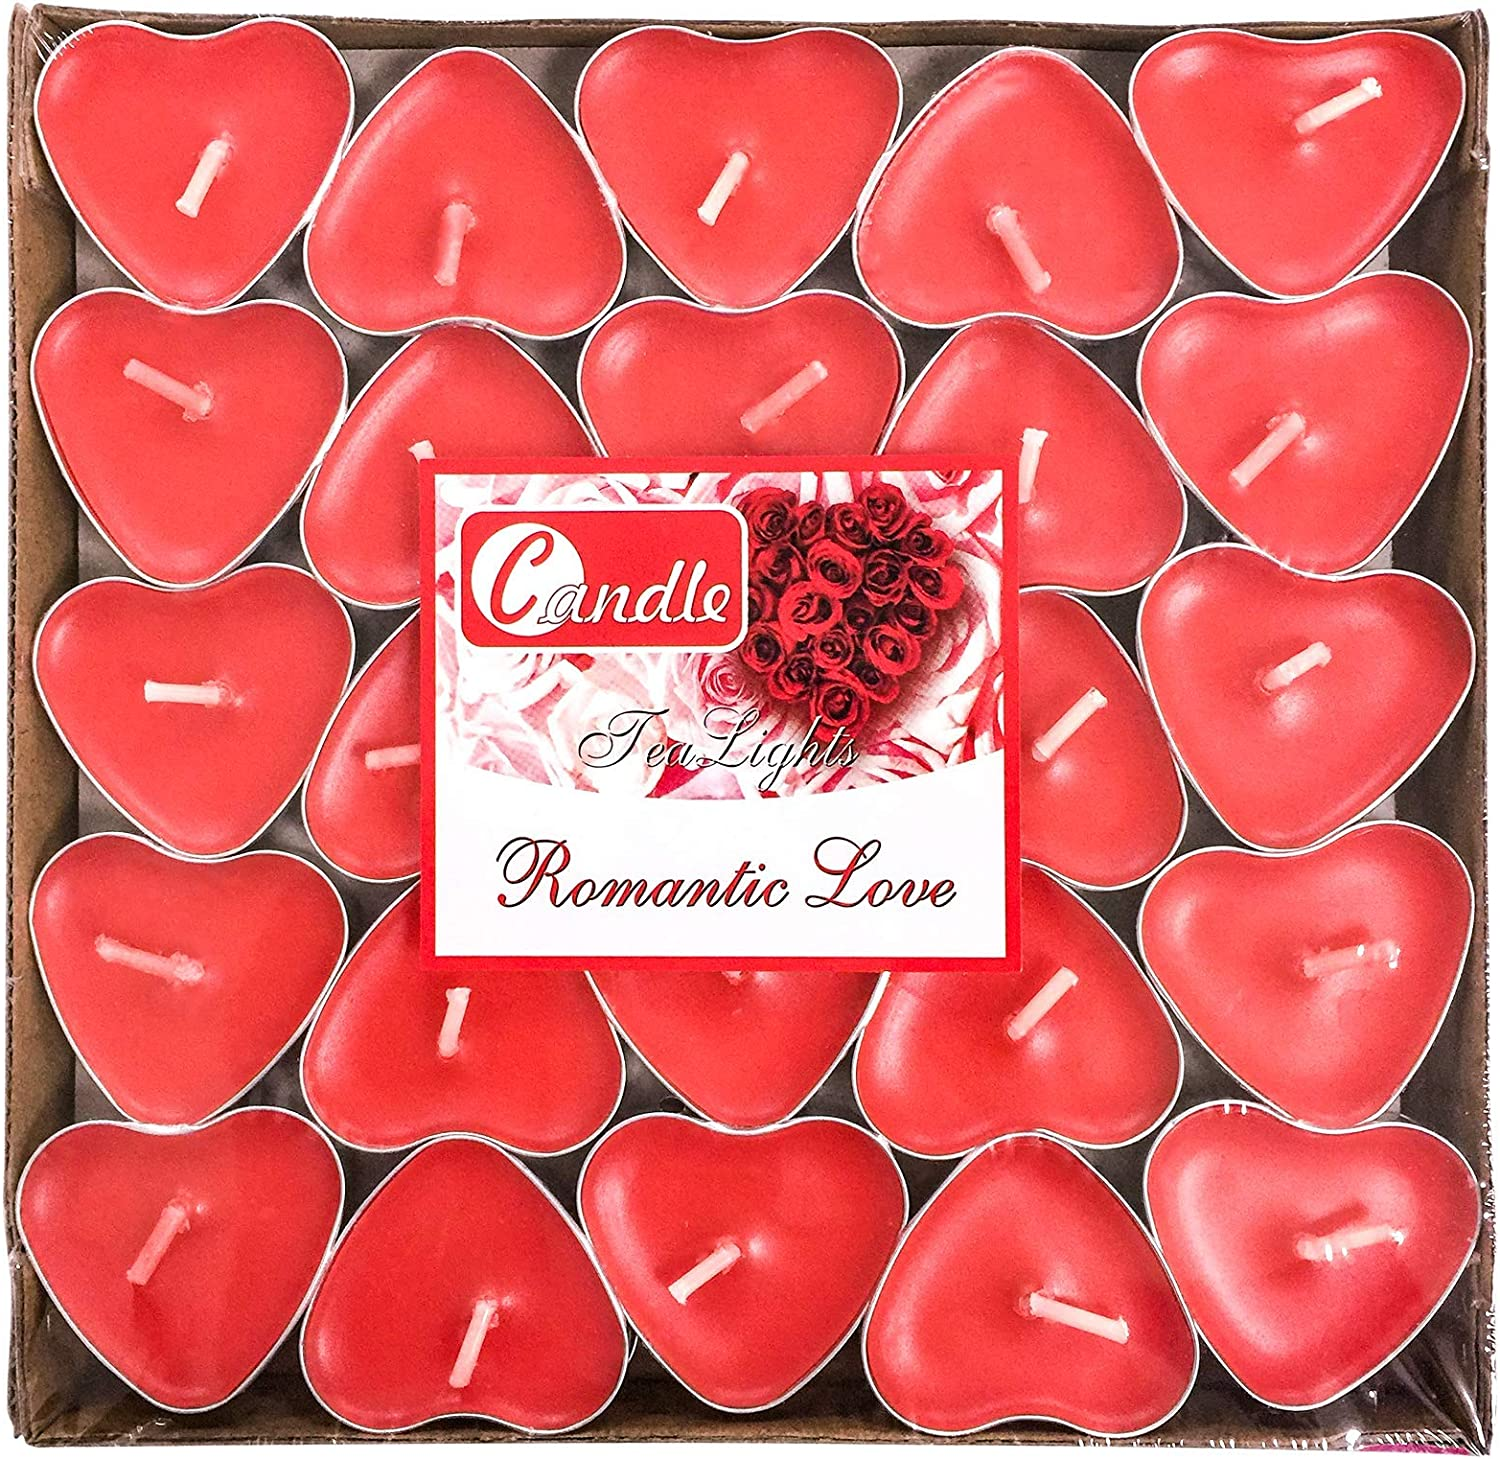 50Packs Heart Shaped Tealight Candles,Romantic Love Unscented Tea Lights Candles,Dripless & Long Lasting Smokeless Mini Tealight Candles for Mood,Romantic Decor,Pool,Dinners,Home,Wedding,Crafts(Red)